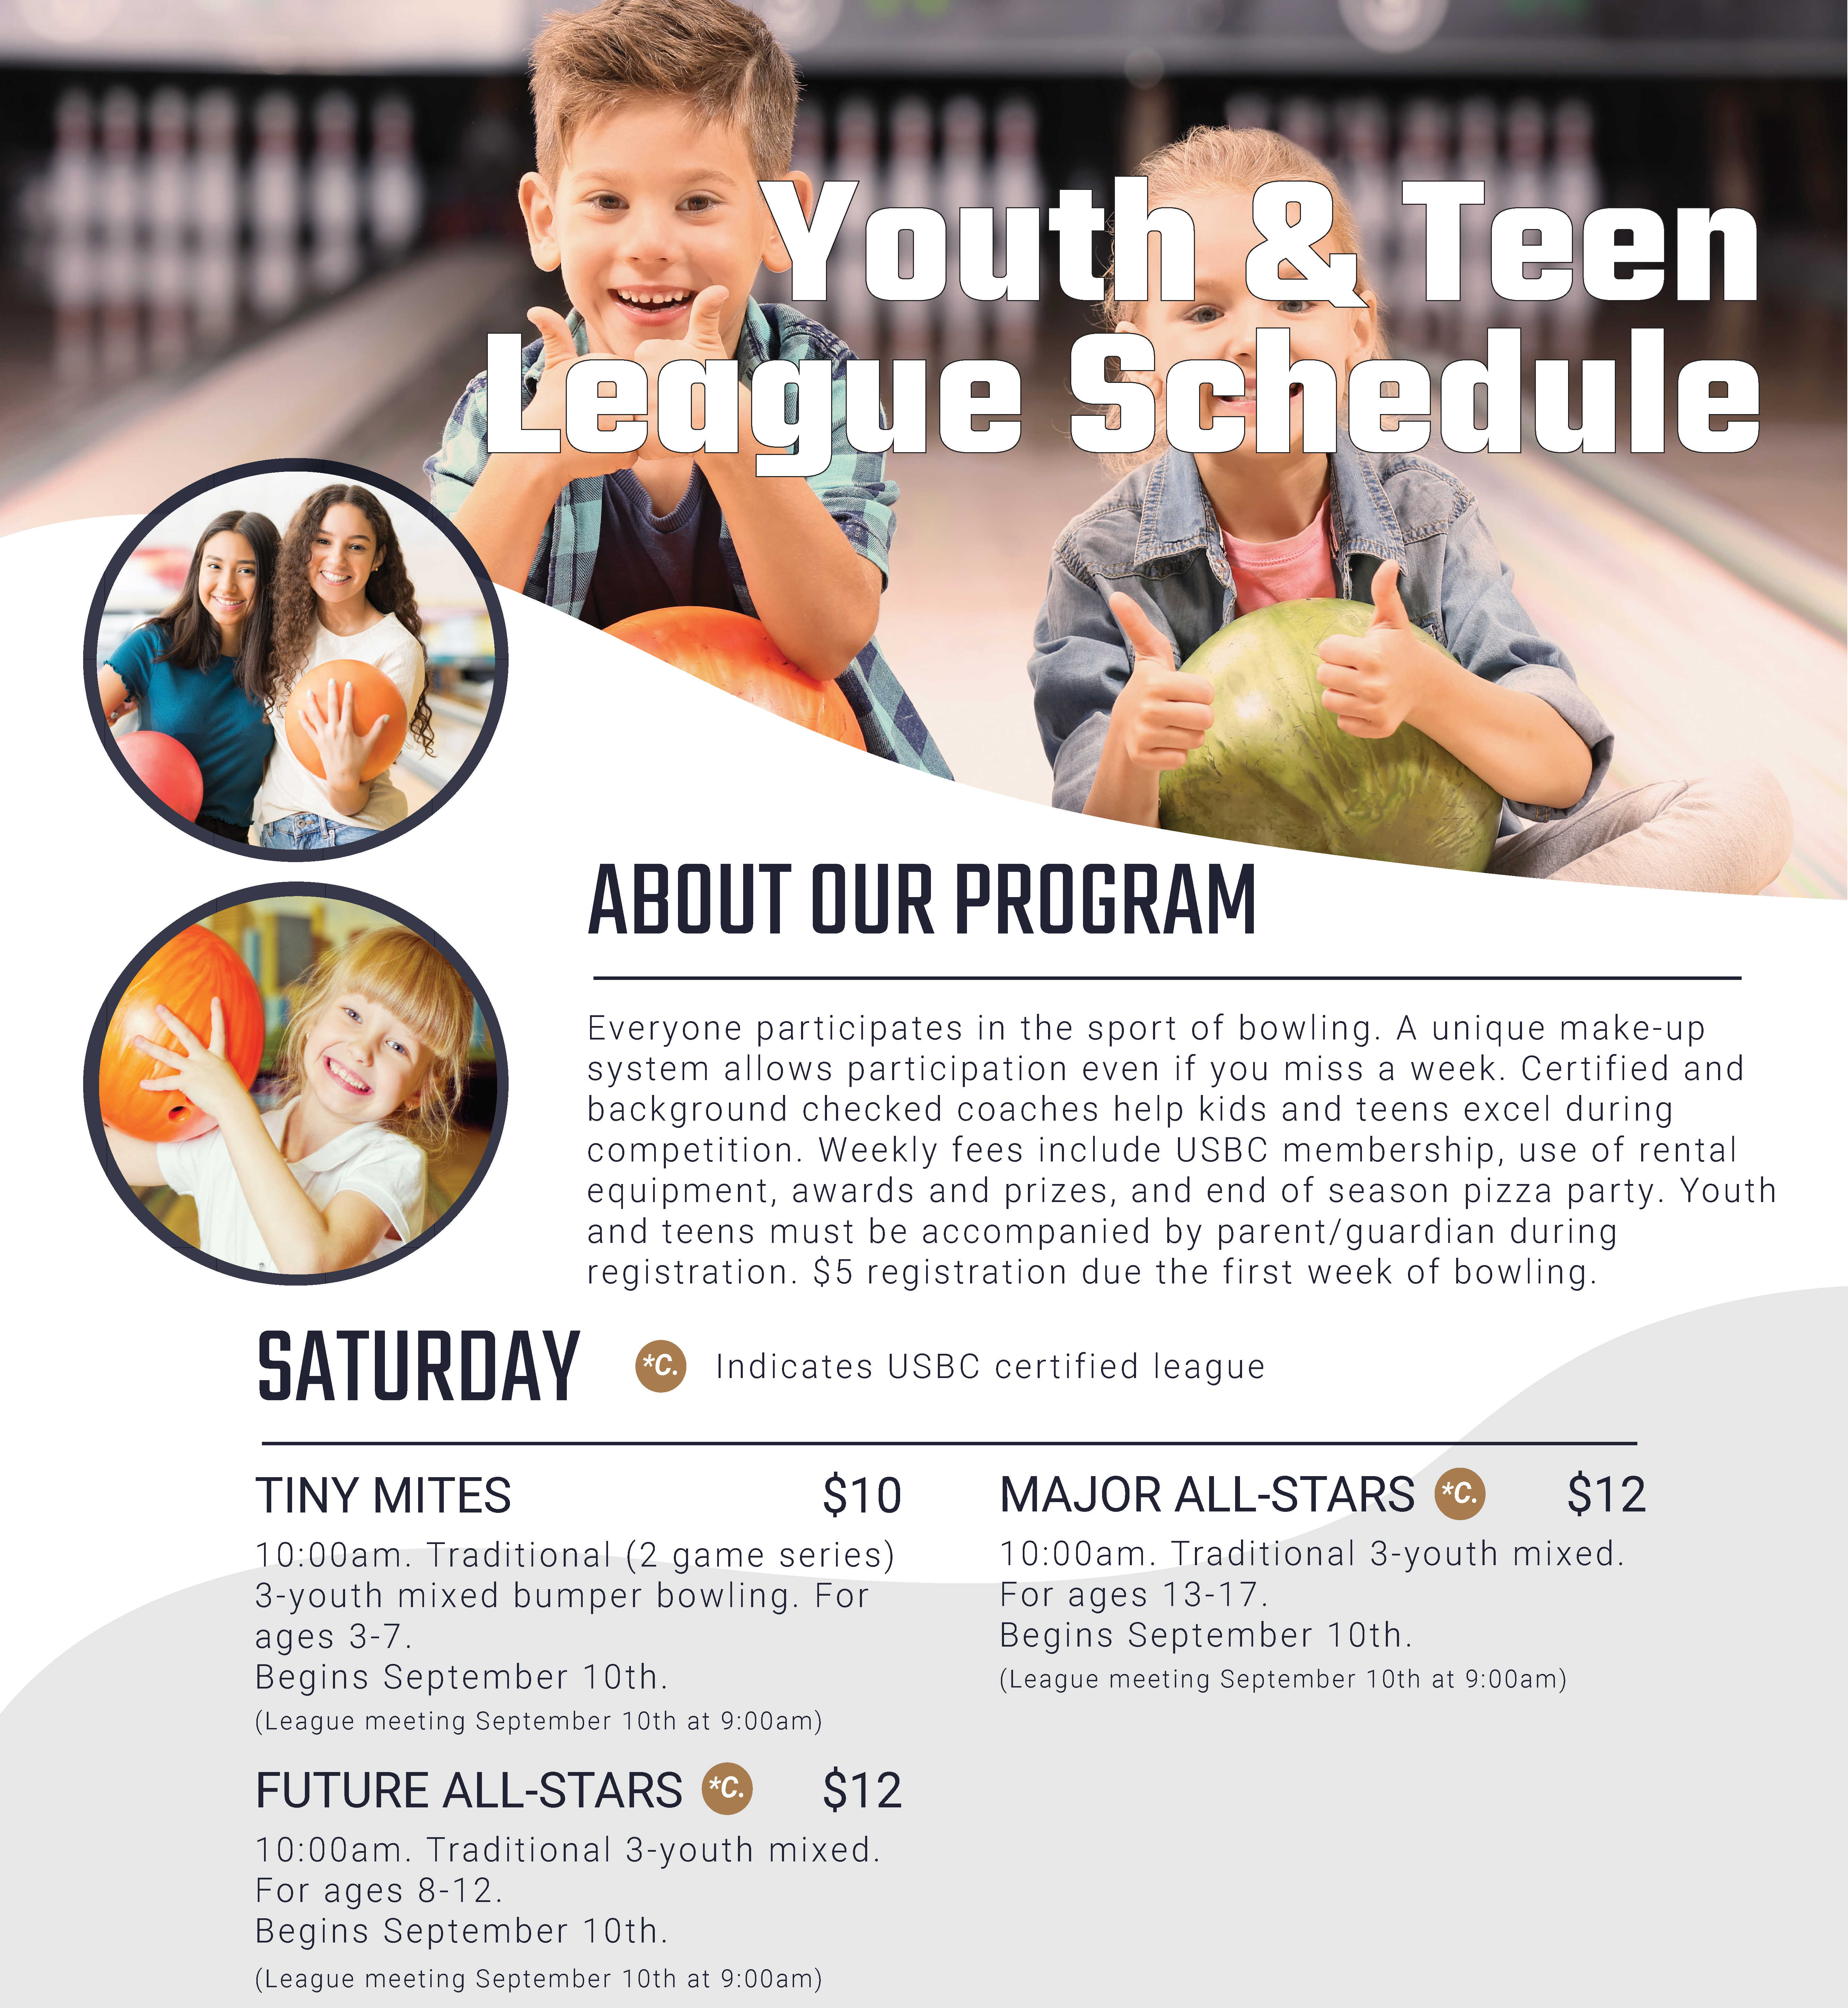 Youth and teen program and league schedule